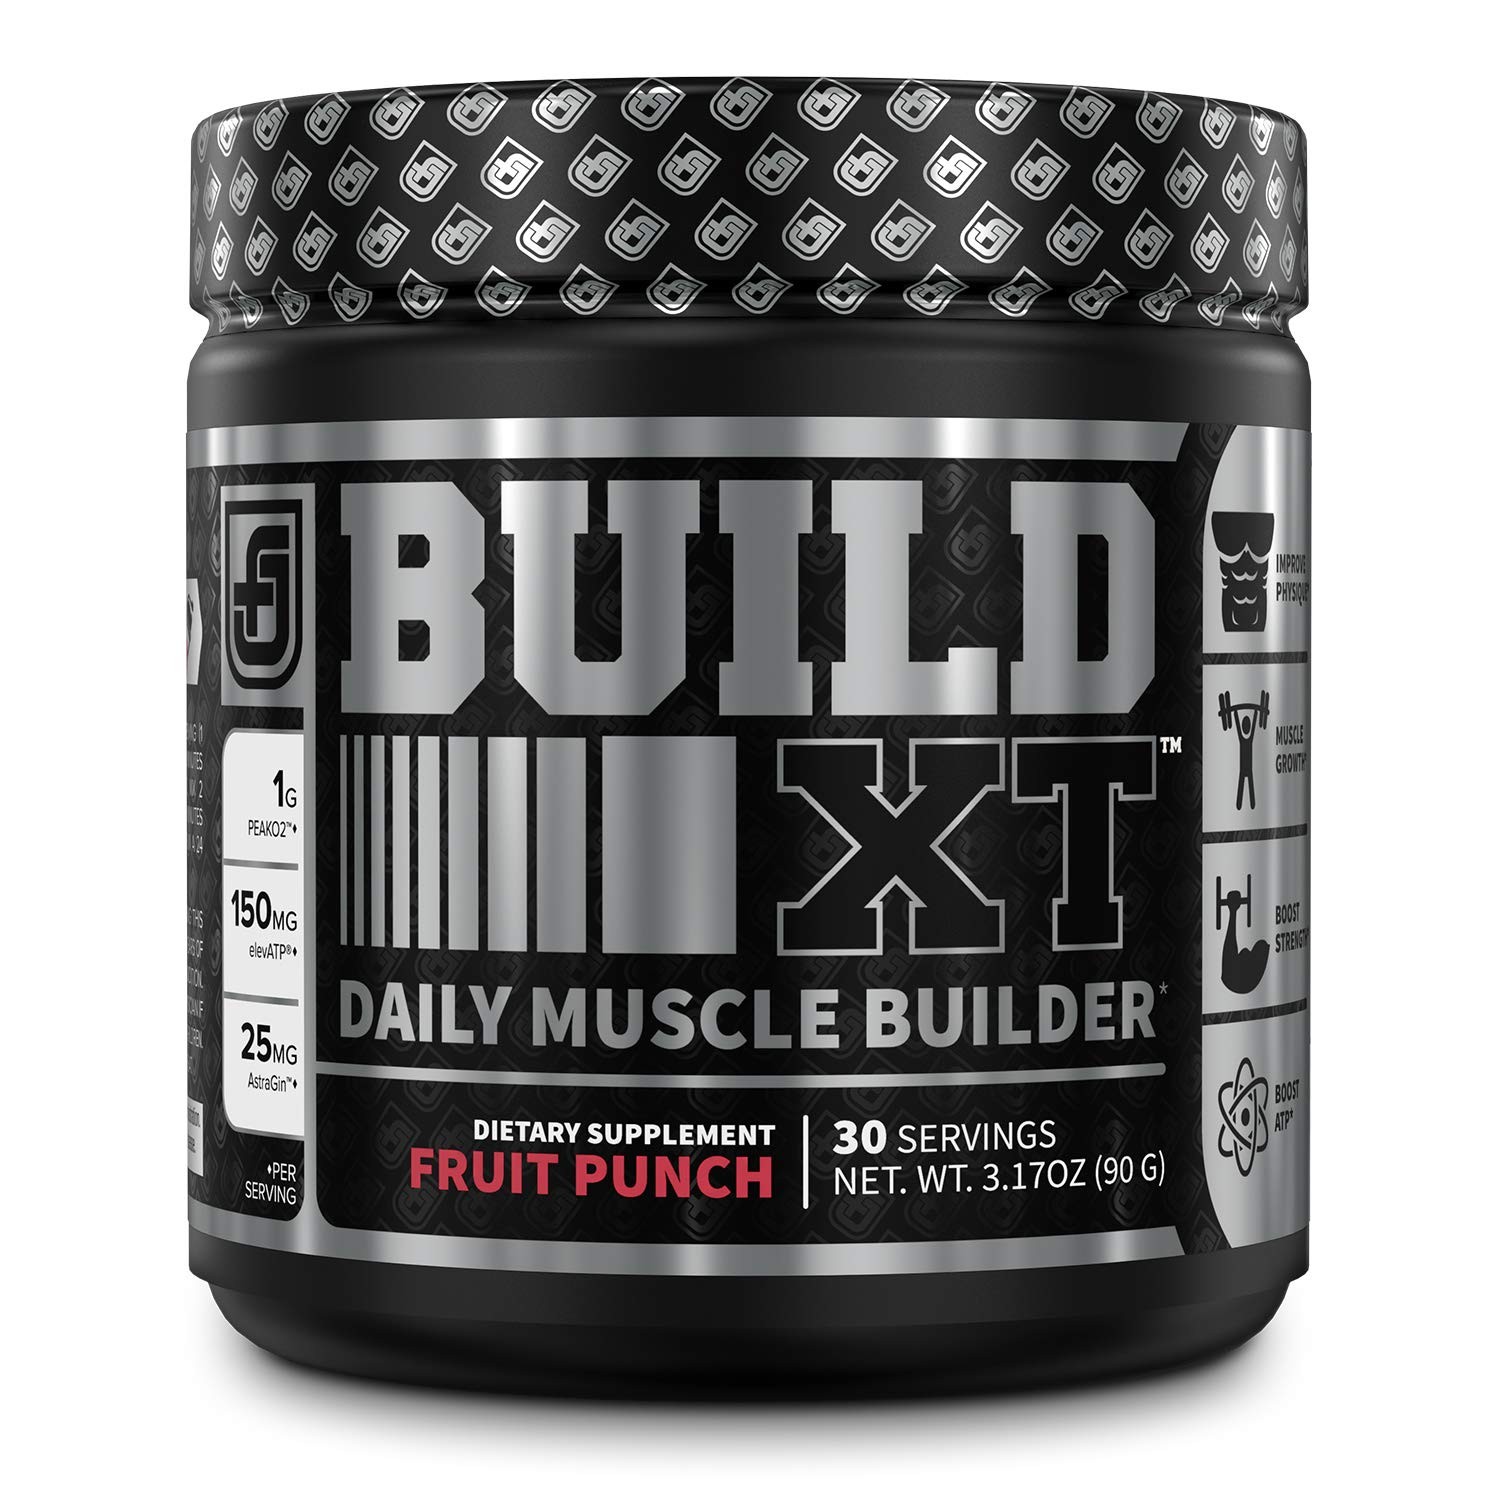 Build-XT Muscle Building Powder - Daily Muscle Builder Supplement for Muscle Growth, Strength, Endurance & Recovery | Featuring Powerful Science-Backed Ingredients Peak02 & elevATP - Fruit Punch, 30sv